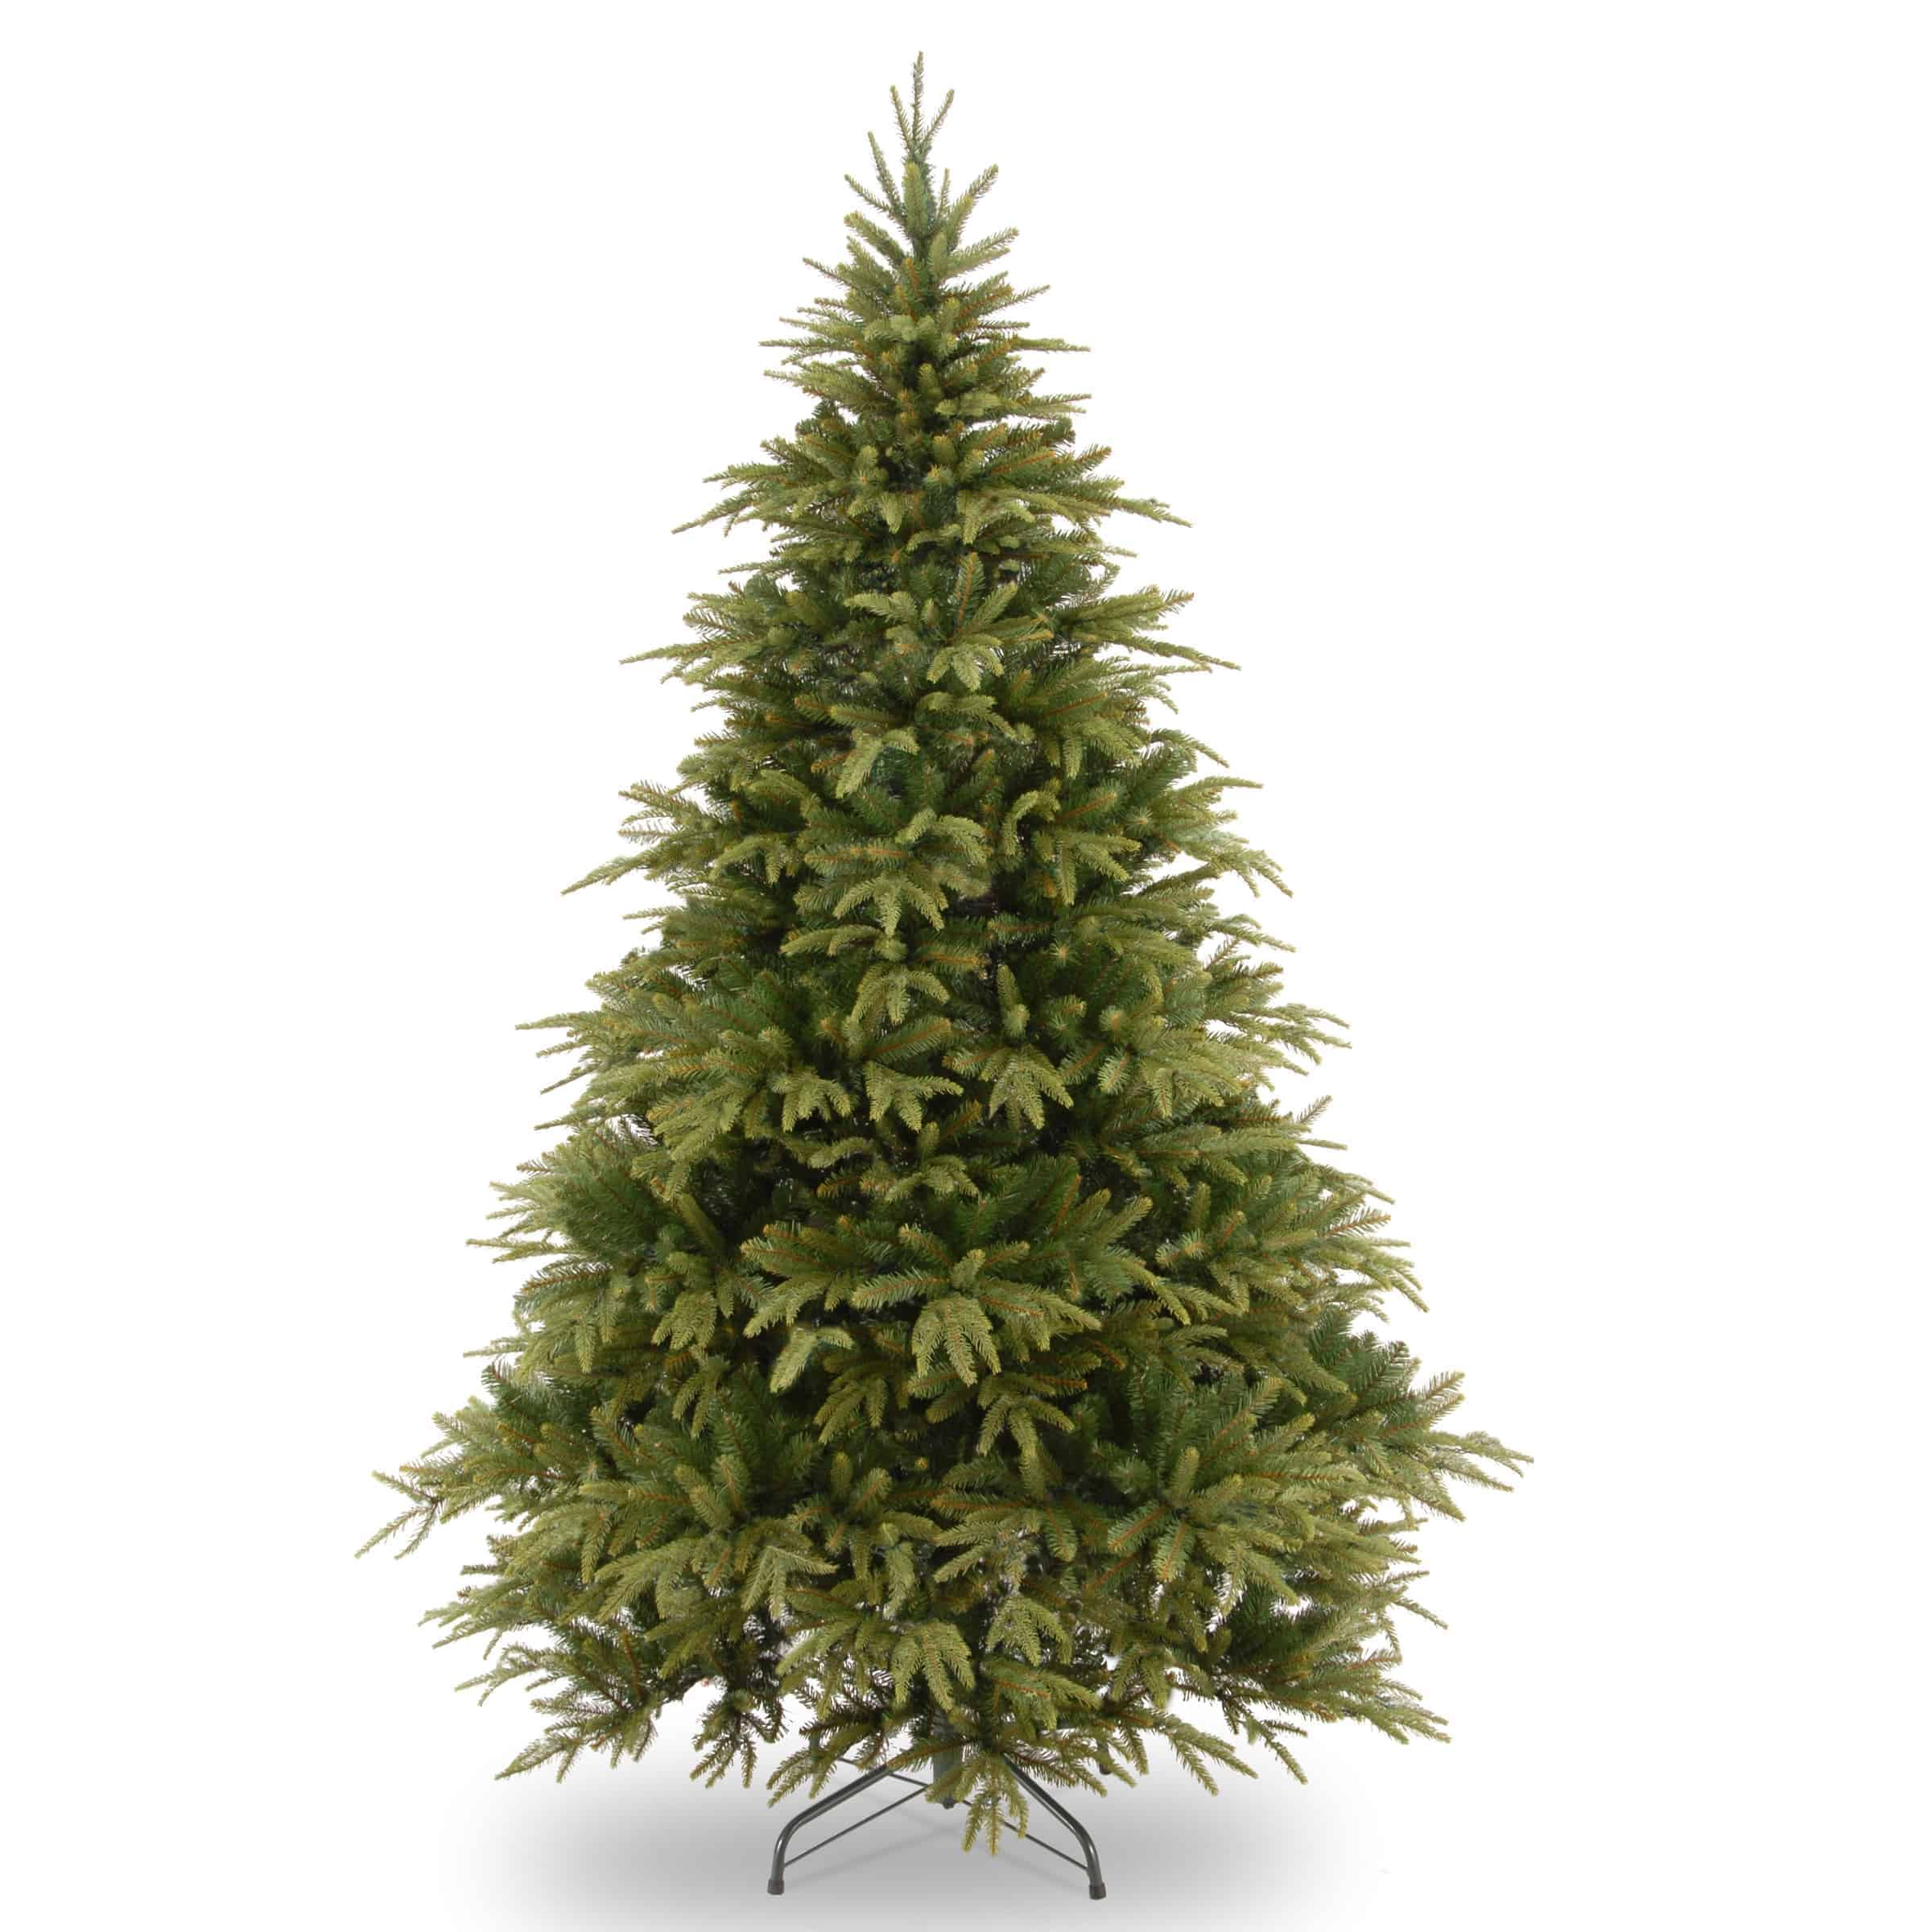 Christmas Trees On Clearance.7 5 Ft Warrington Spruce Artificial Christmas Tree Online Only